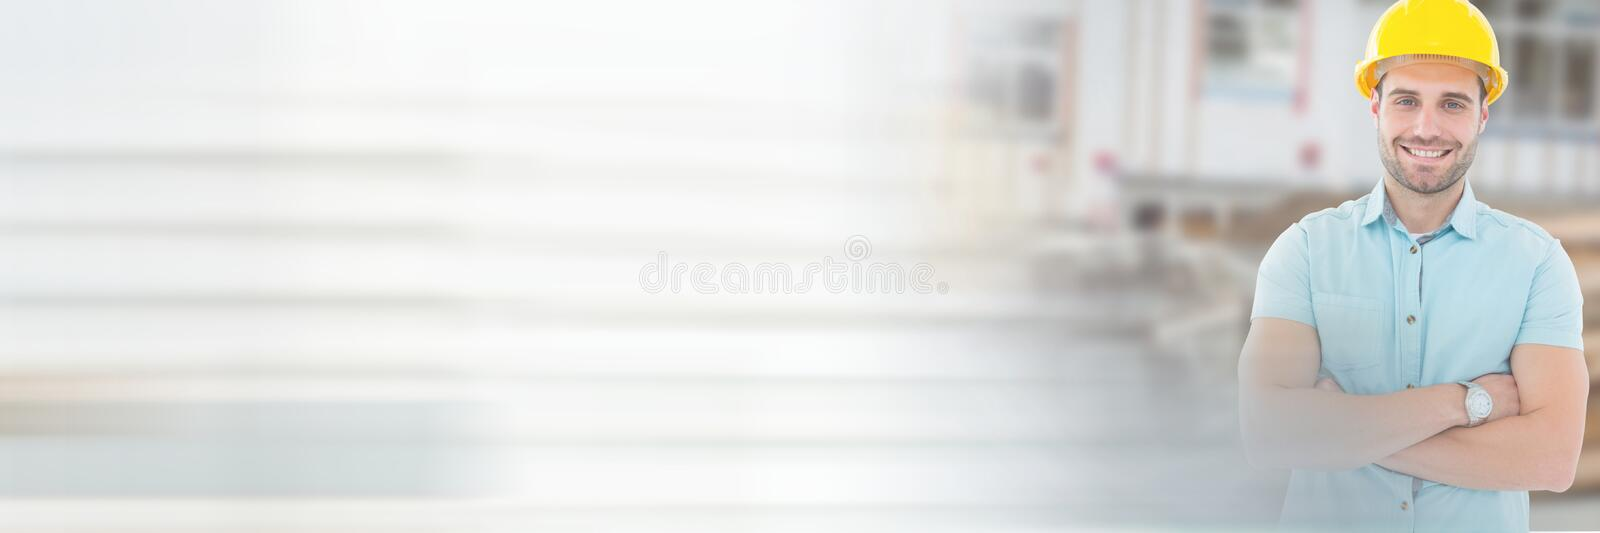 Construction Worker in front of construction site with transition effect royalty free stock image